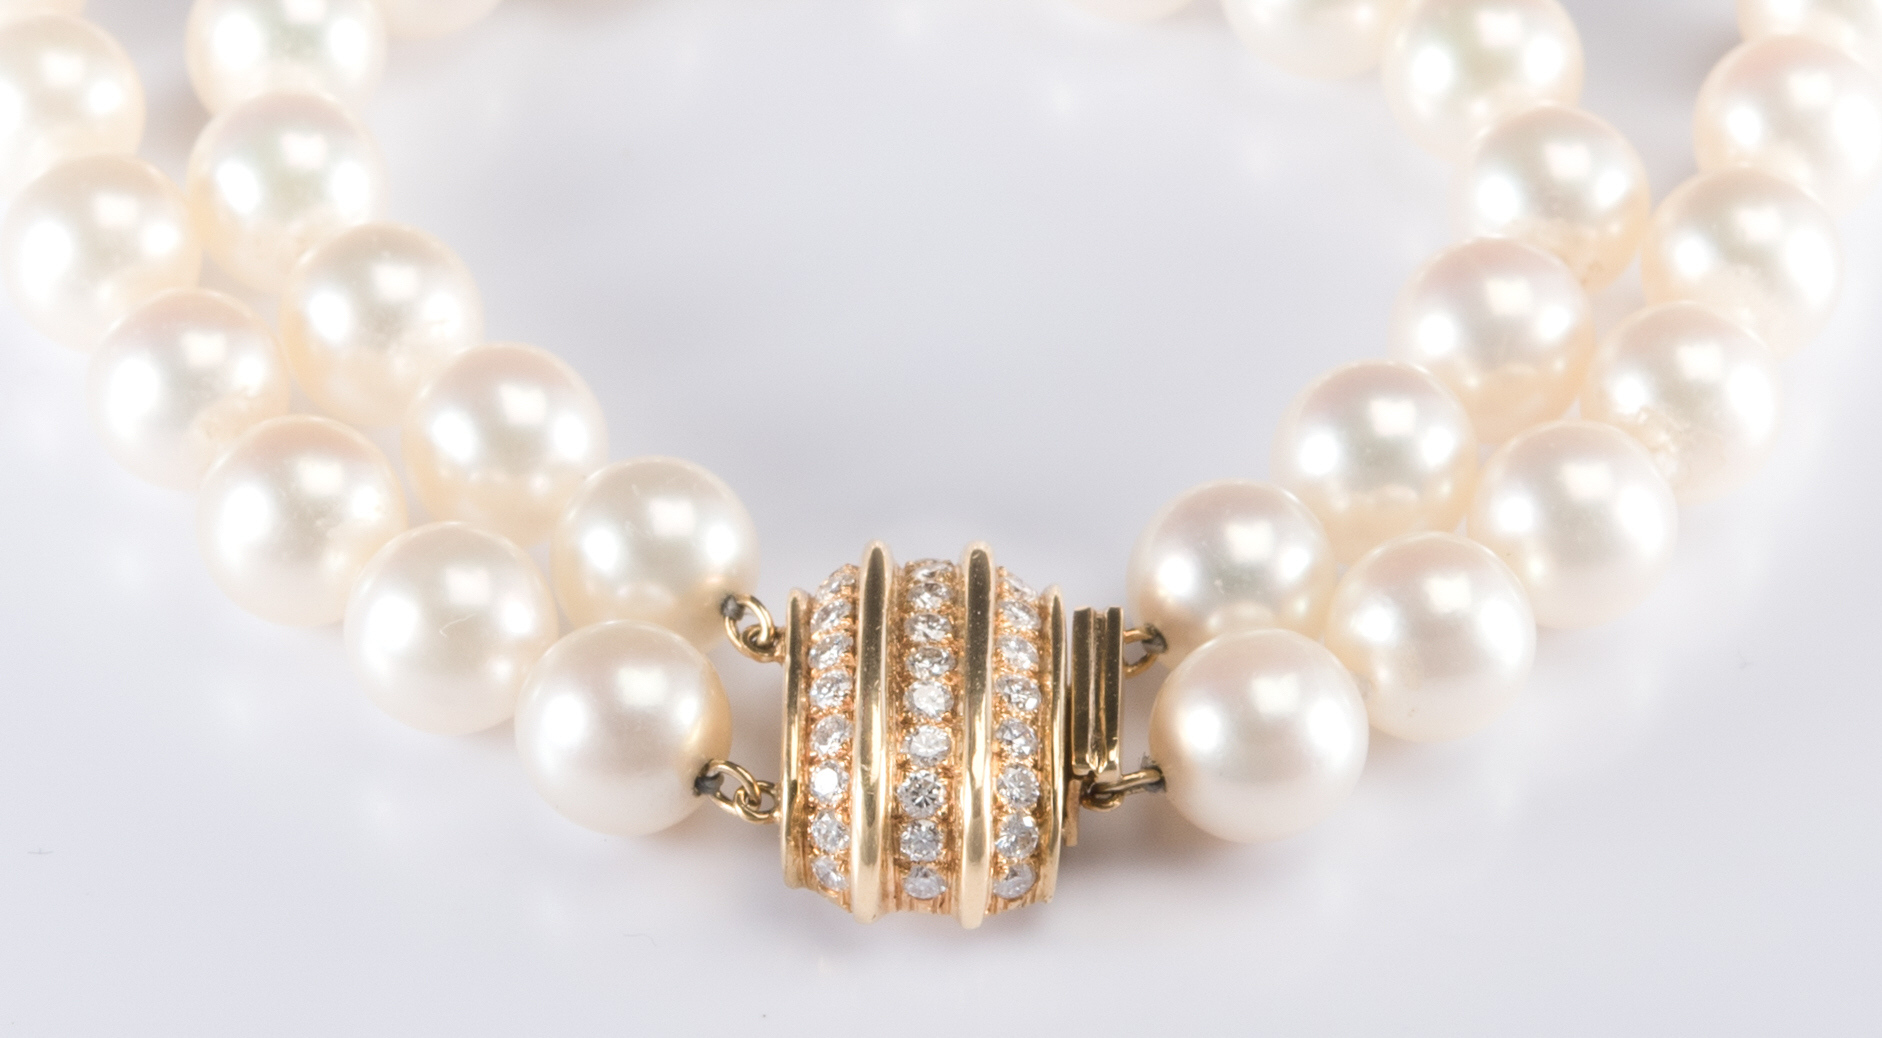 Lot 707: 8 mm Pearls, 14K Diamond Clasp